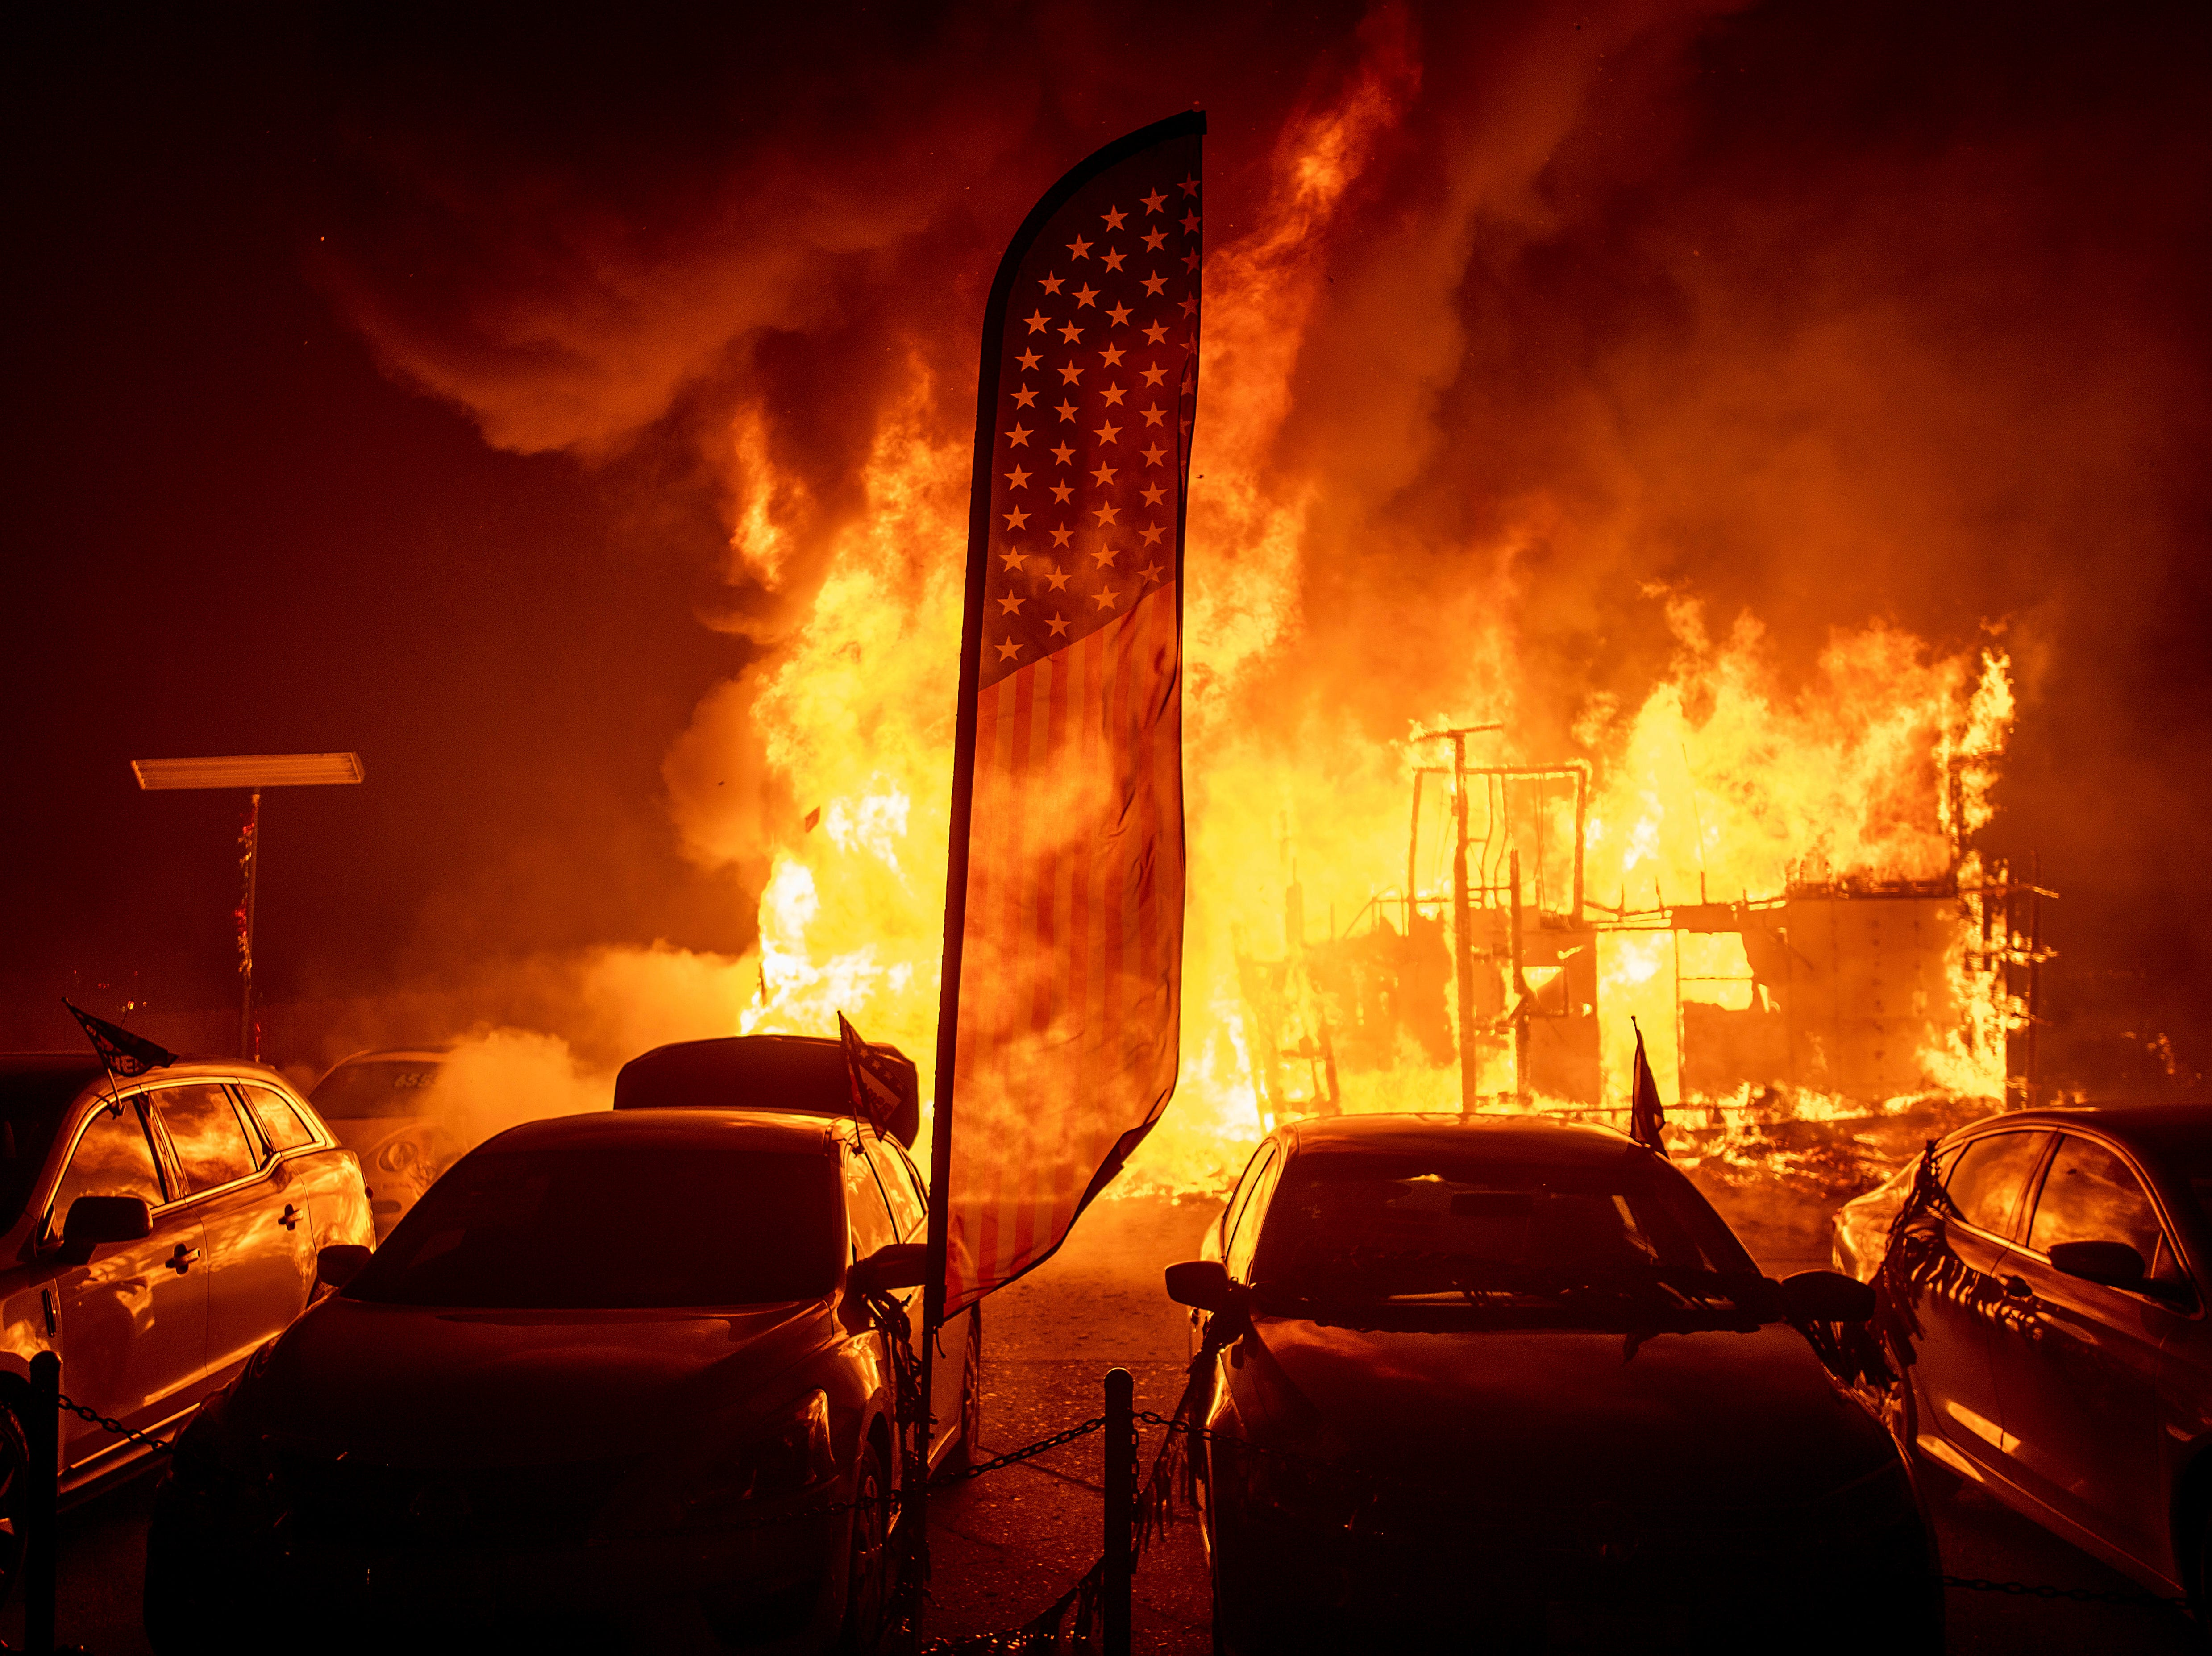 Raging California fires: Why have the flames spread so quickly?